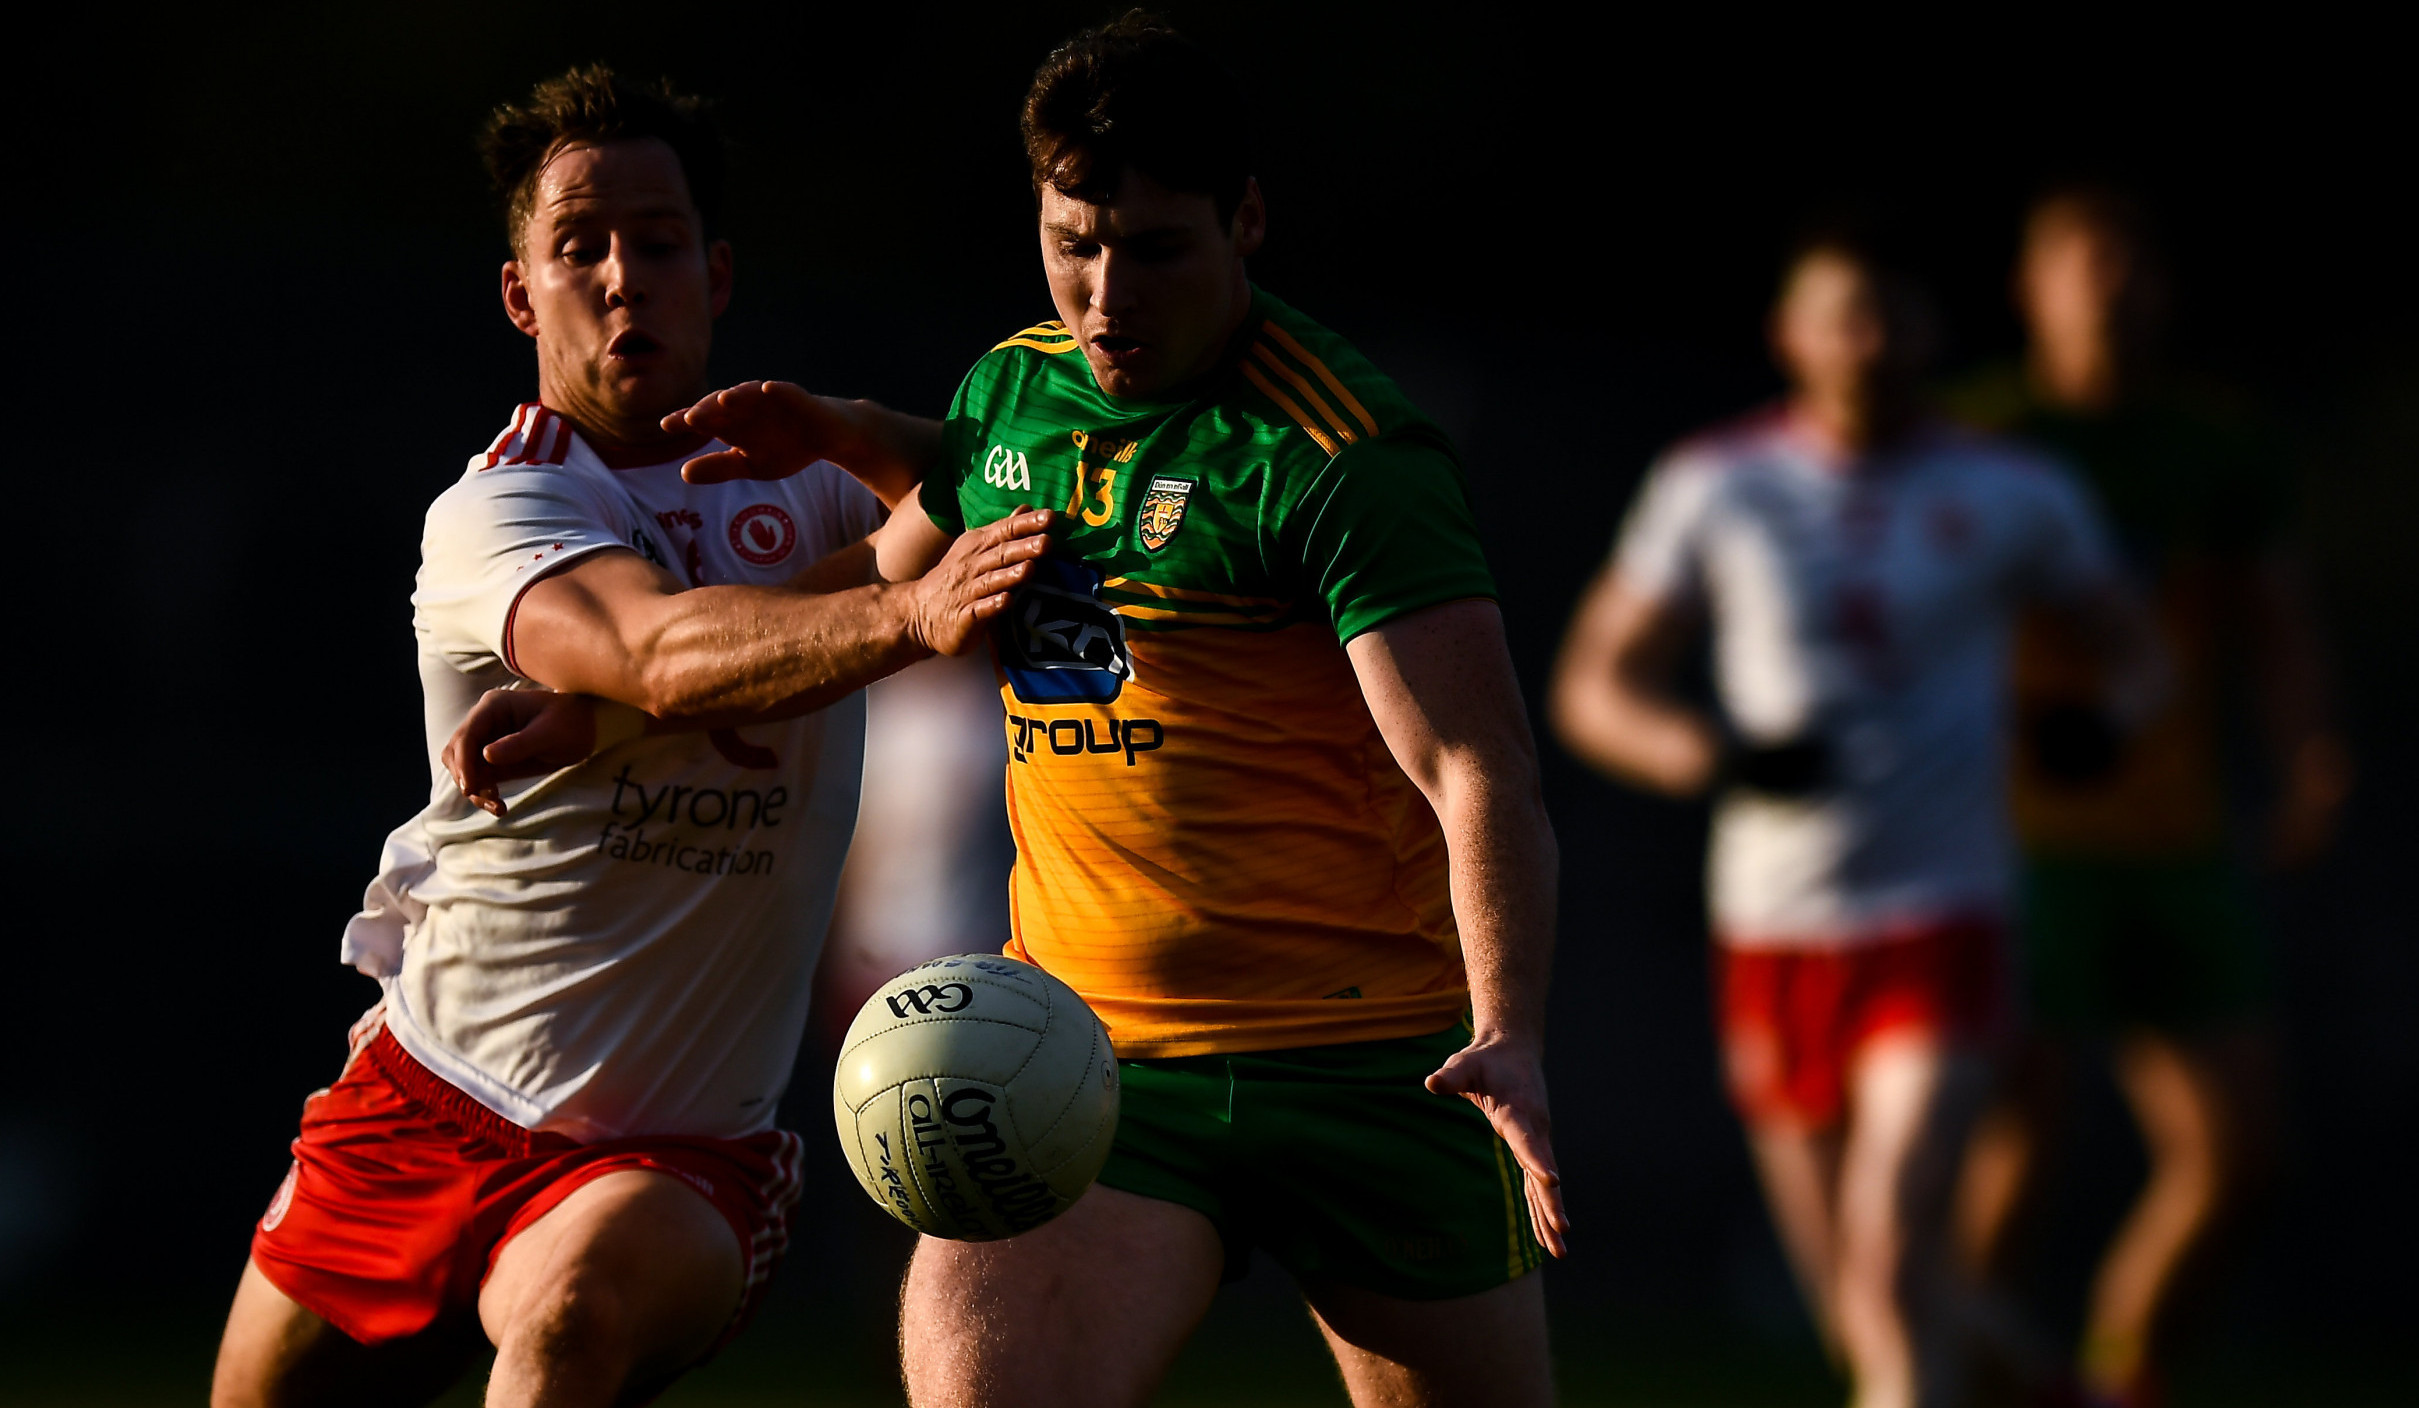 Ulster SFC Quarter Final Preview: Donegal v Tyrone